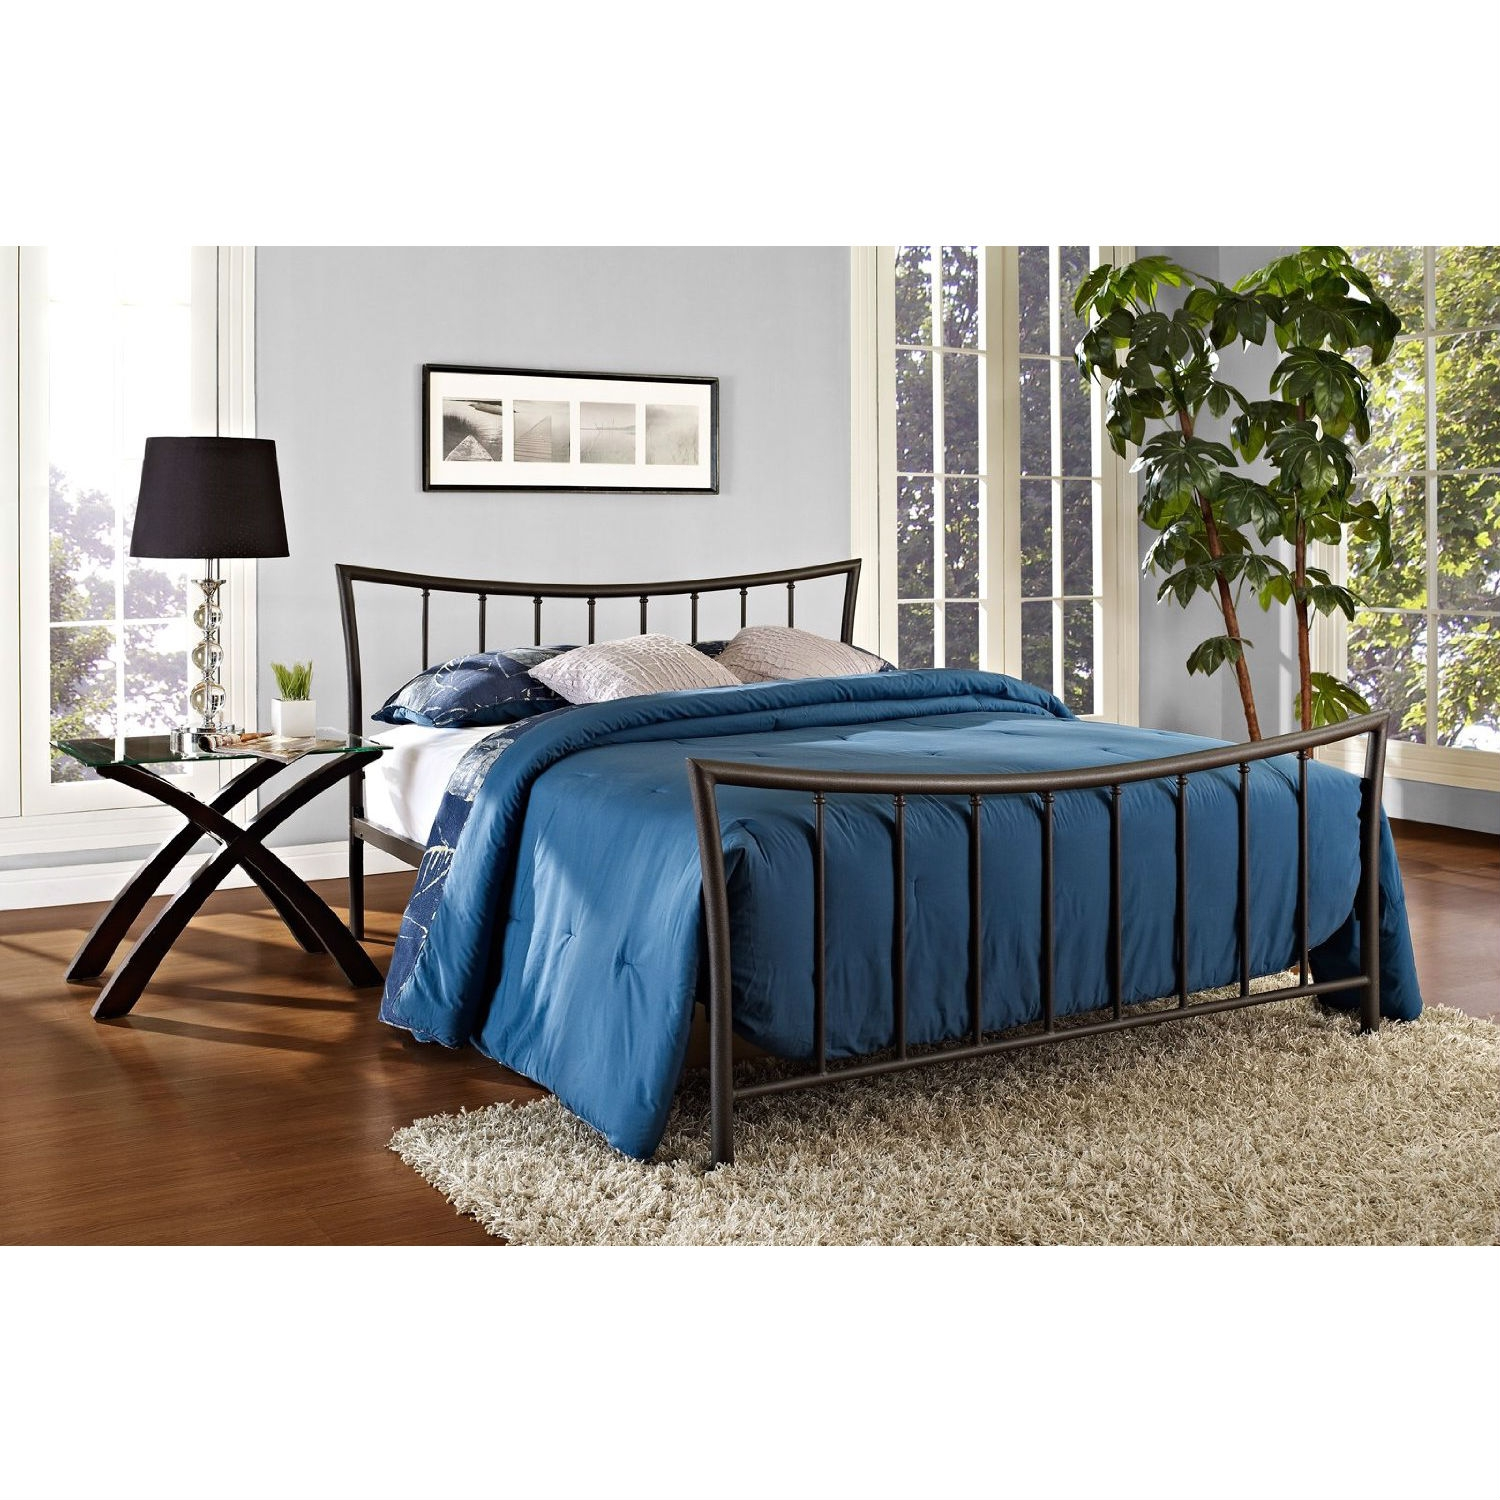 Full Size Bronze Metal Platform Bed With Headboard And Footboard